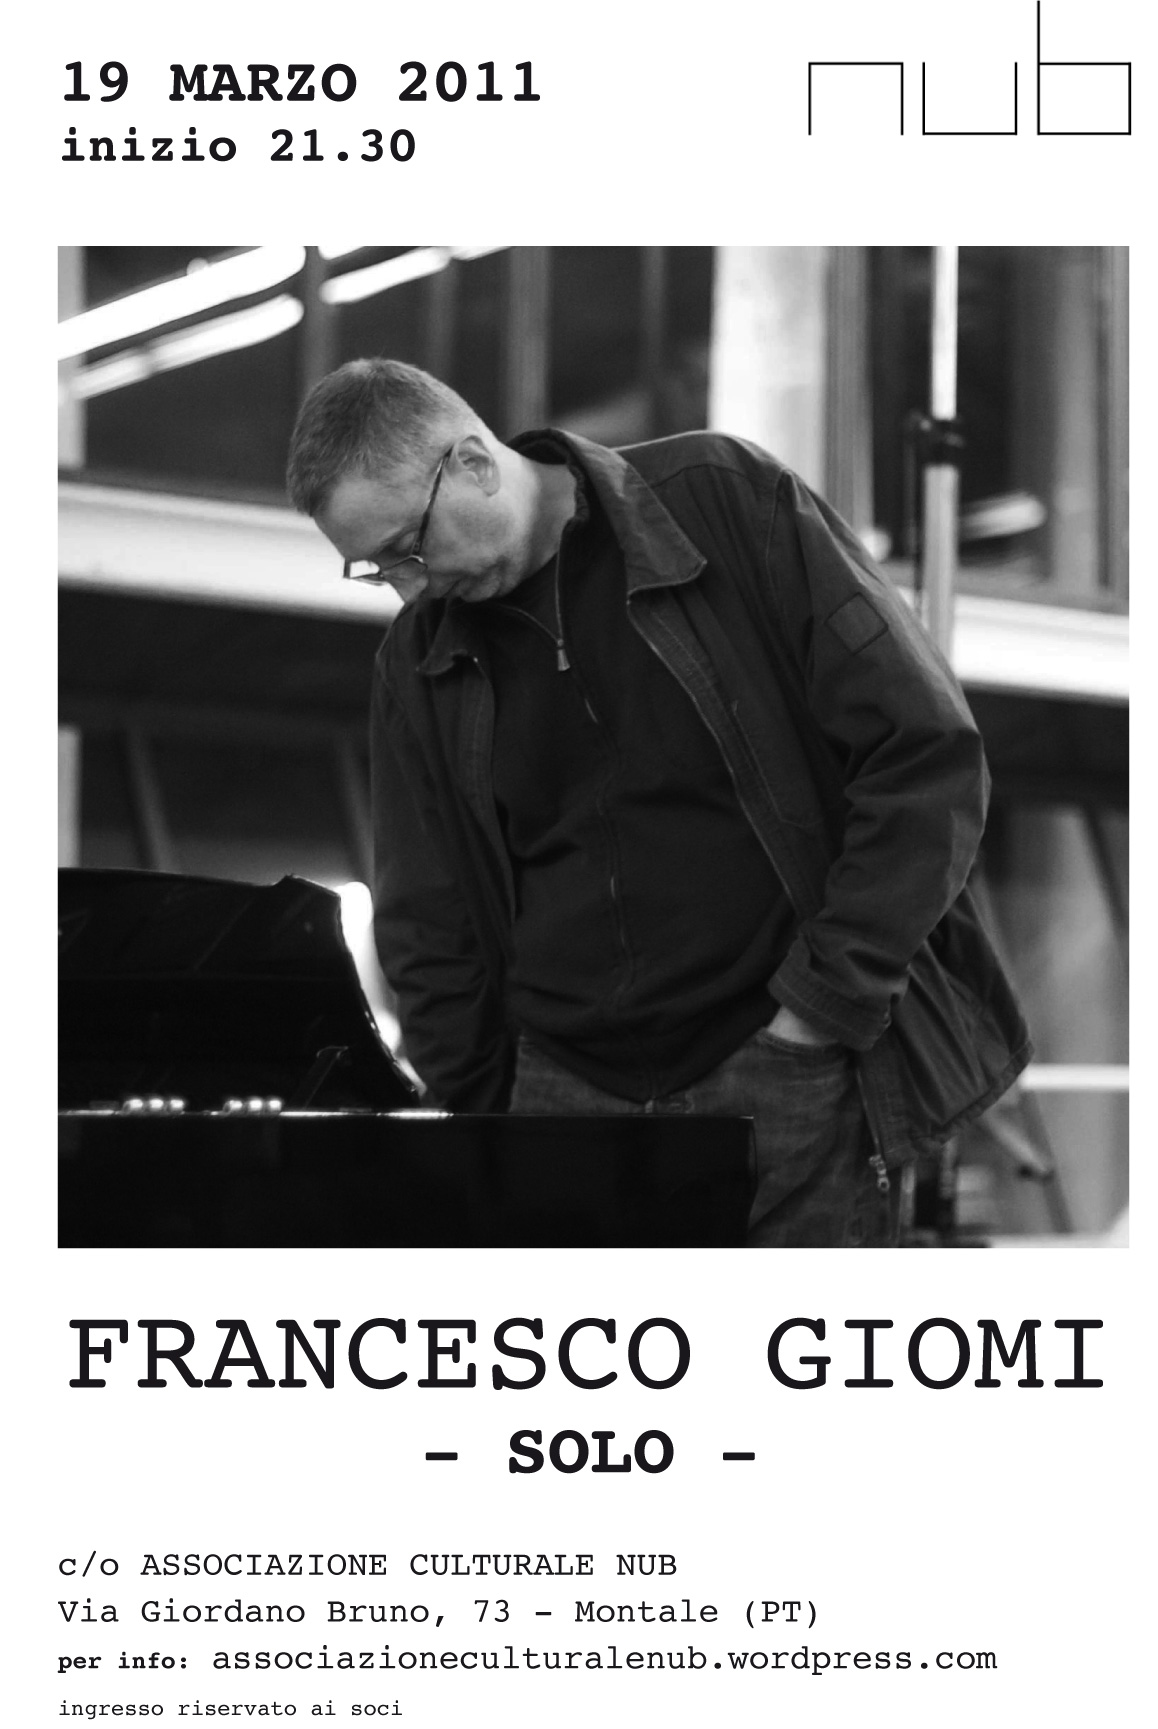 FRANCESCO GIOMI | 19.03.2011